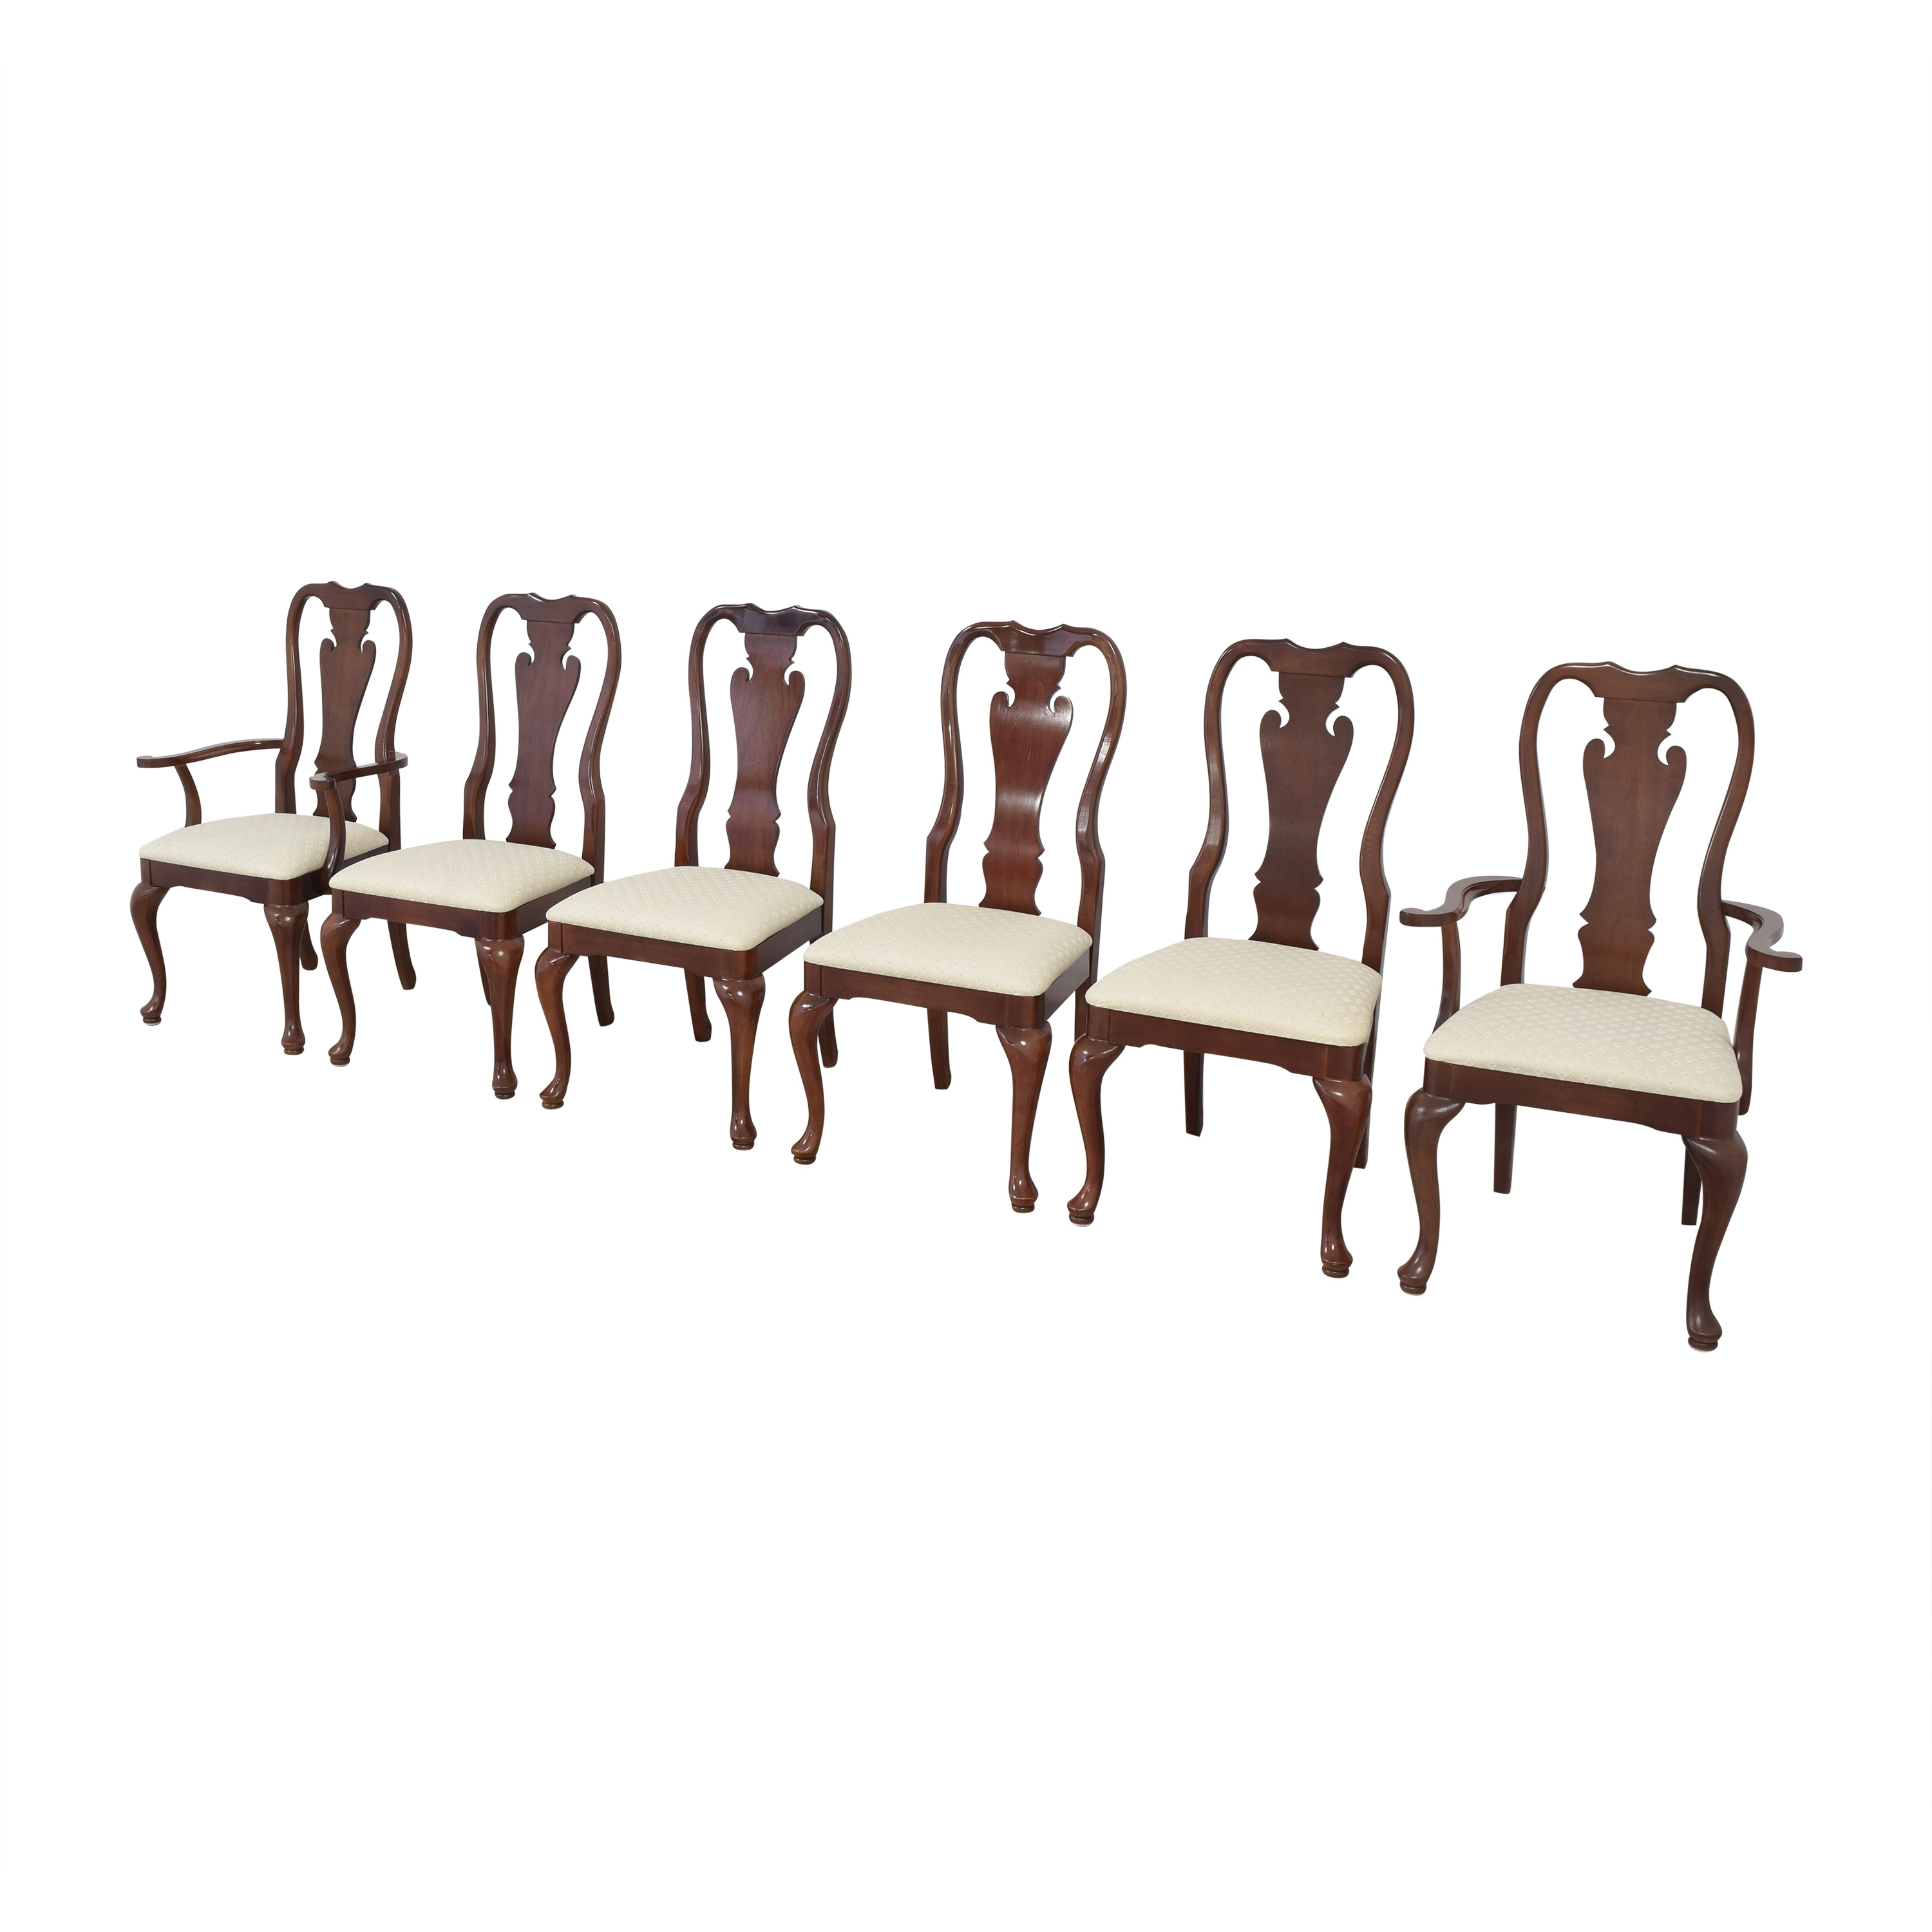 Thomasville Queen Anne Dining Chairs sale